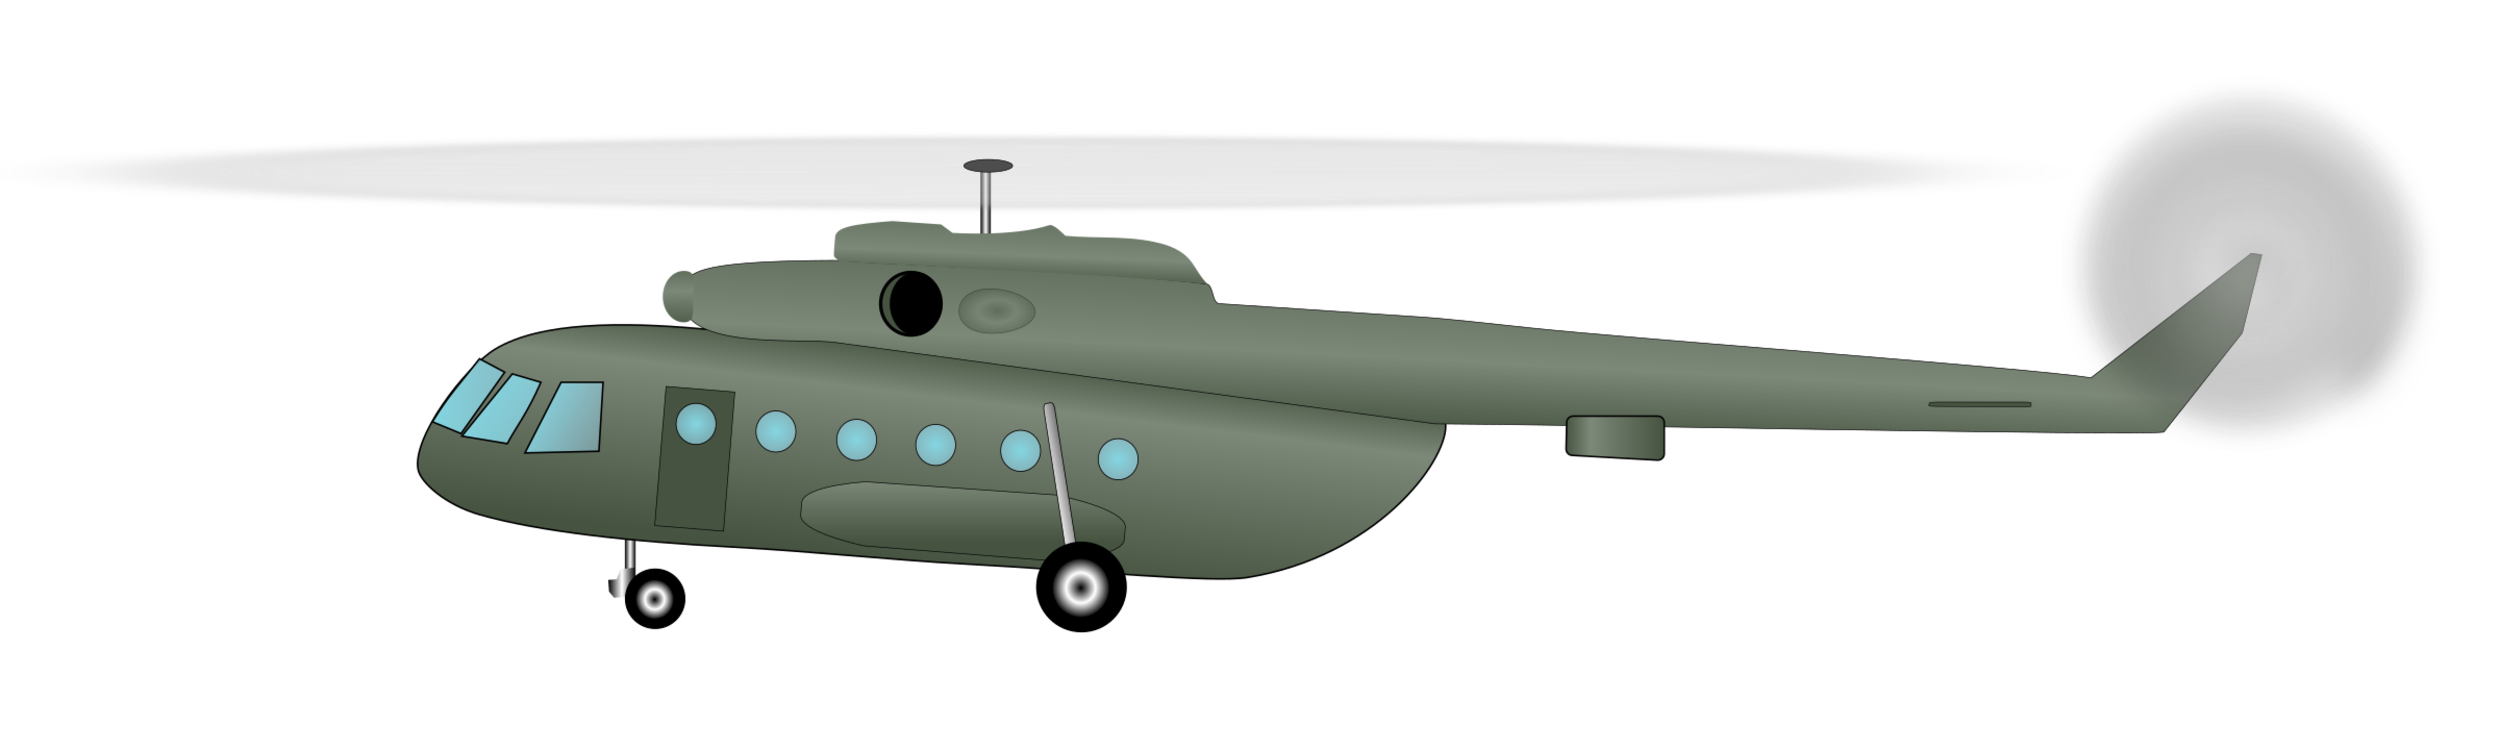 Rotorcraft,Military Helicopter,Helicopter Rotor